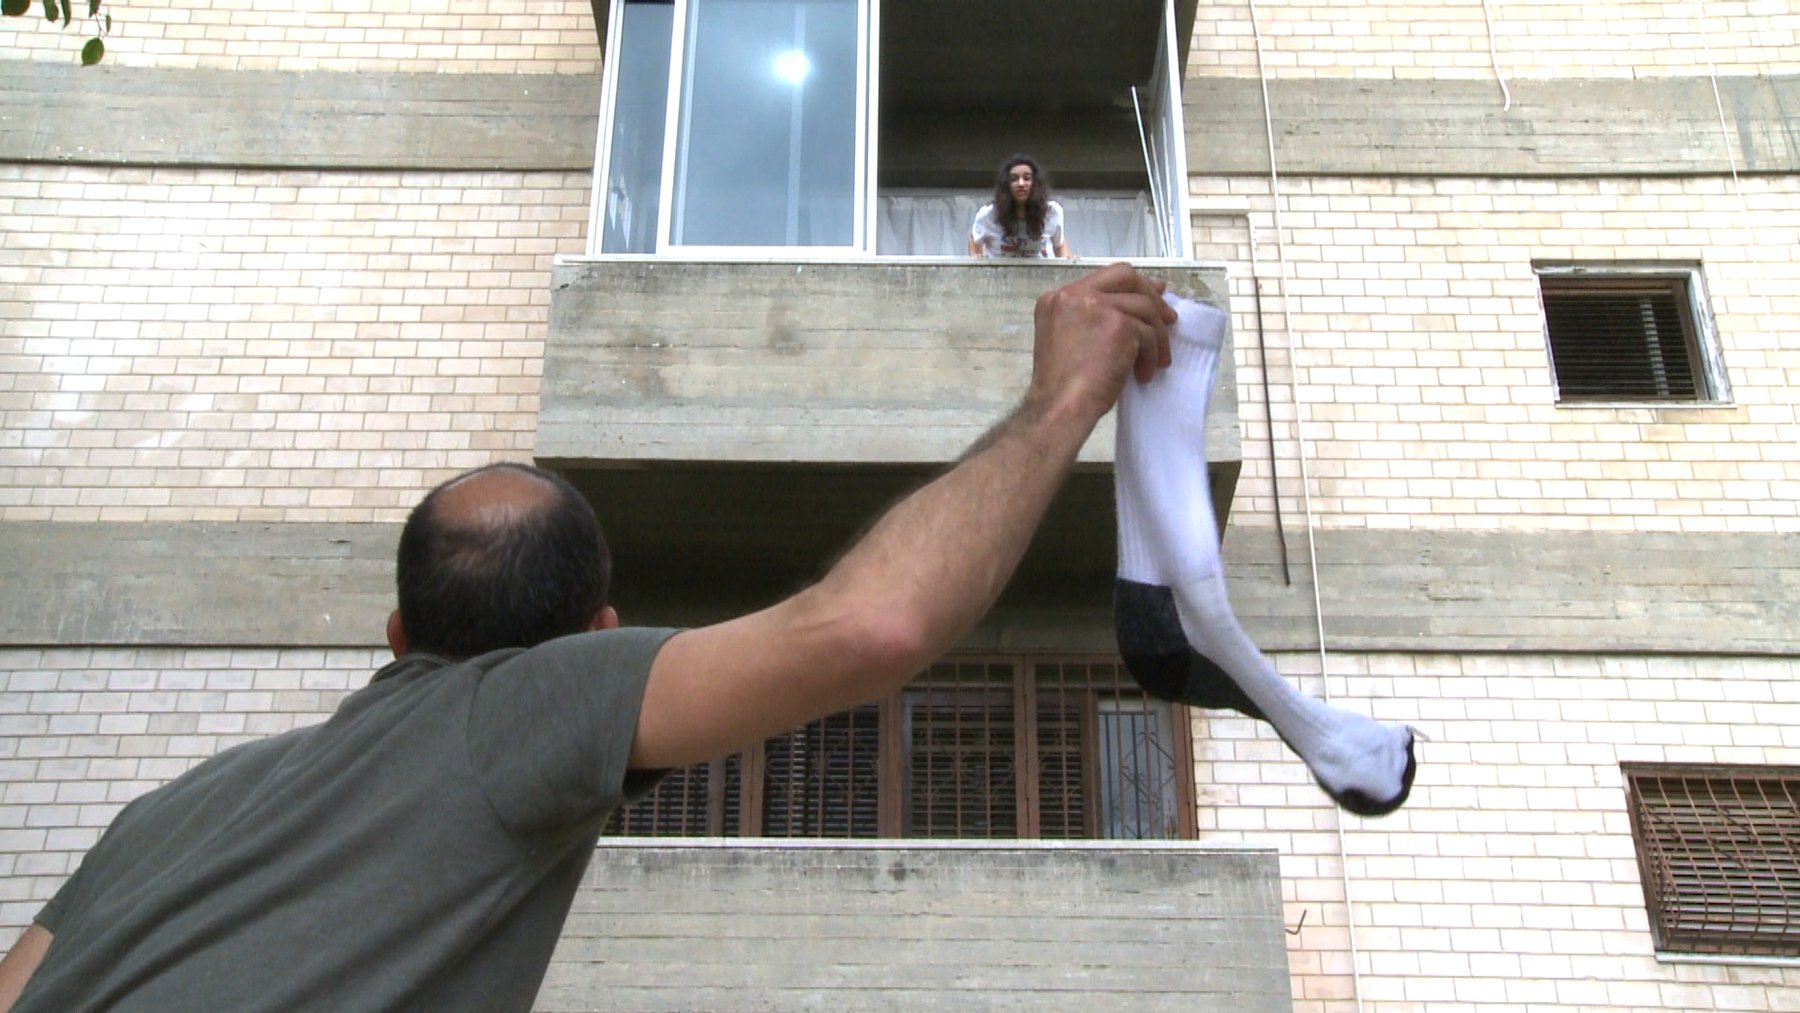 A balding man holds a white tube sock up as a woman looks down from a window above, Ben Ner Soundtracks